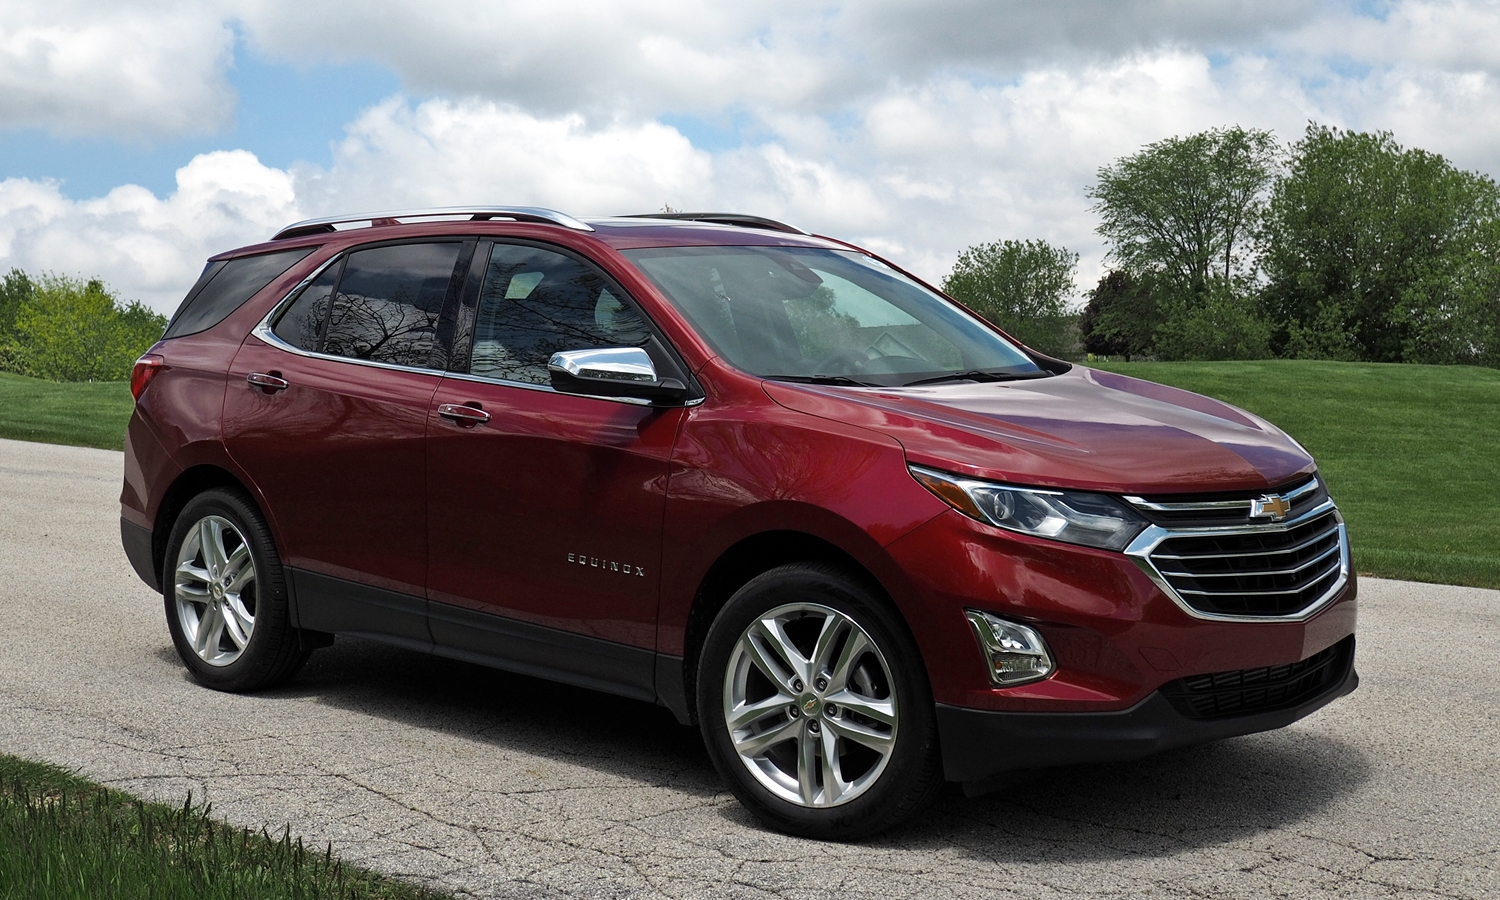 Mazda CX-5 Photos: 2018 Chevrolet Equinox front quarter view